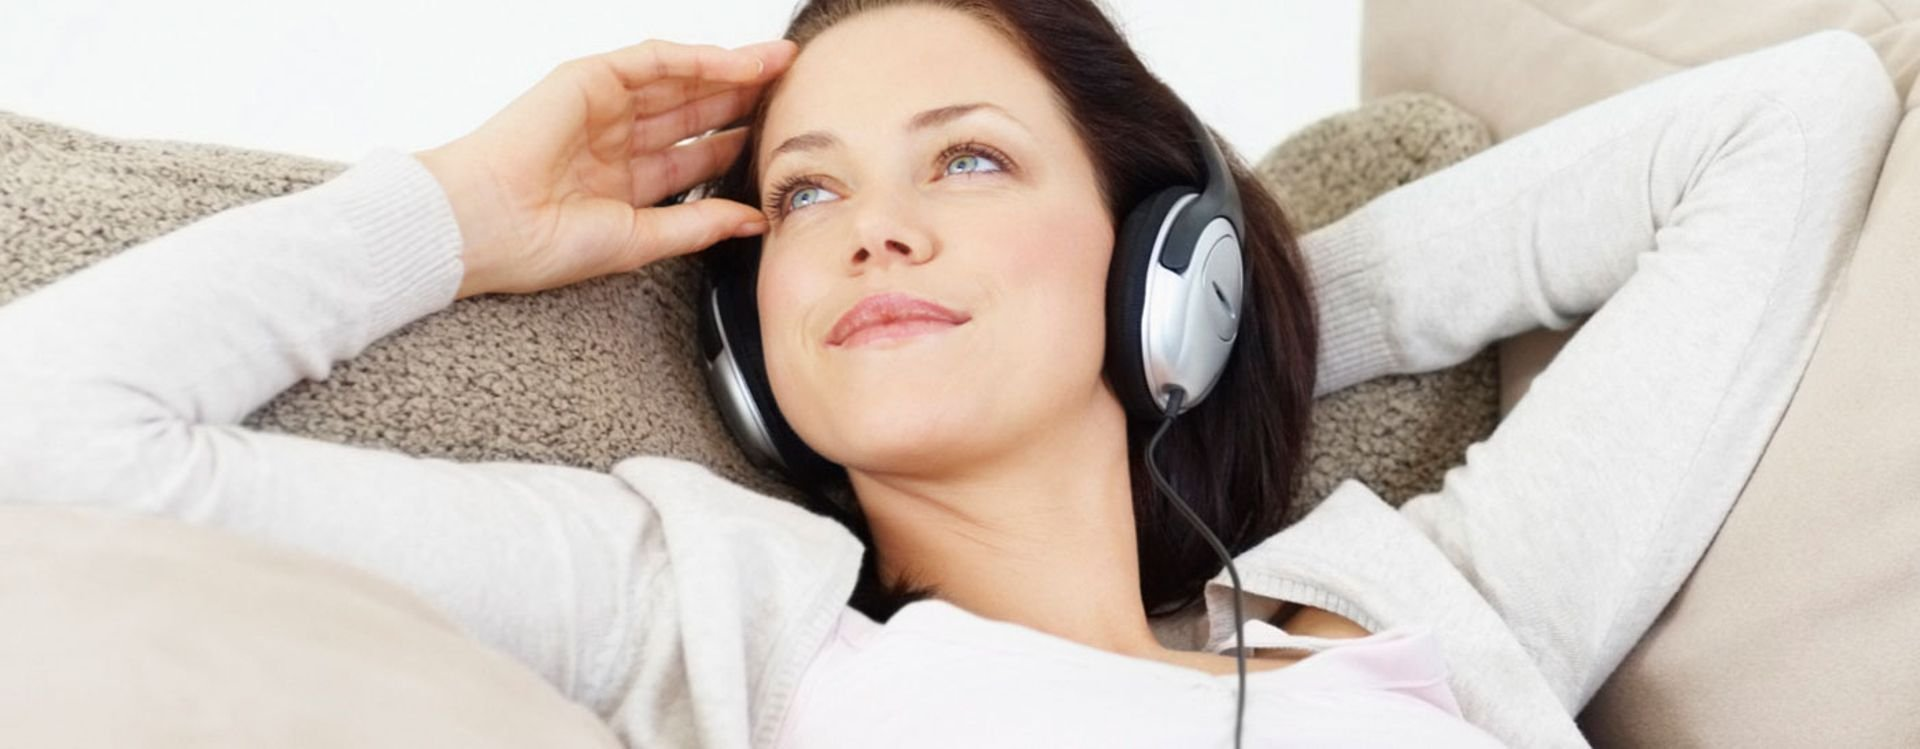 Studies show that using headphones can make you concentrate more, especially if you listen to relaxing music!